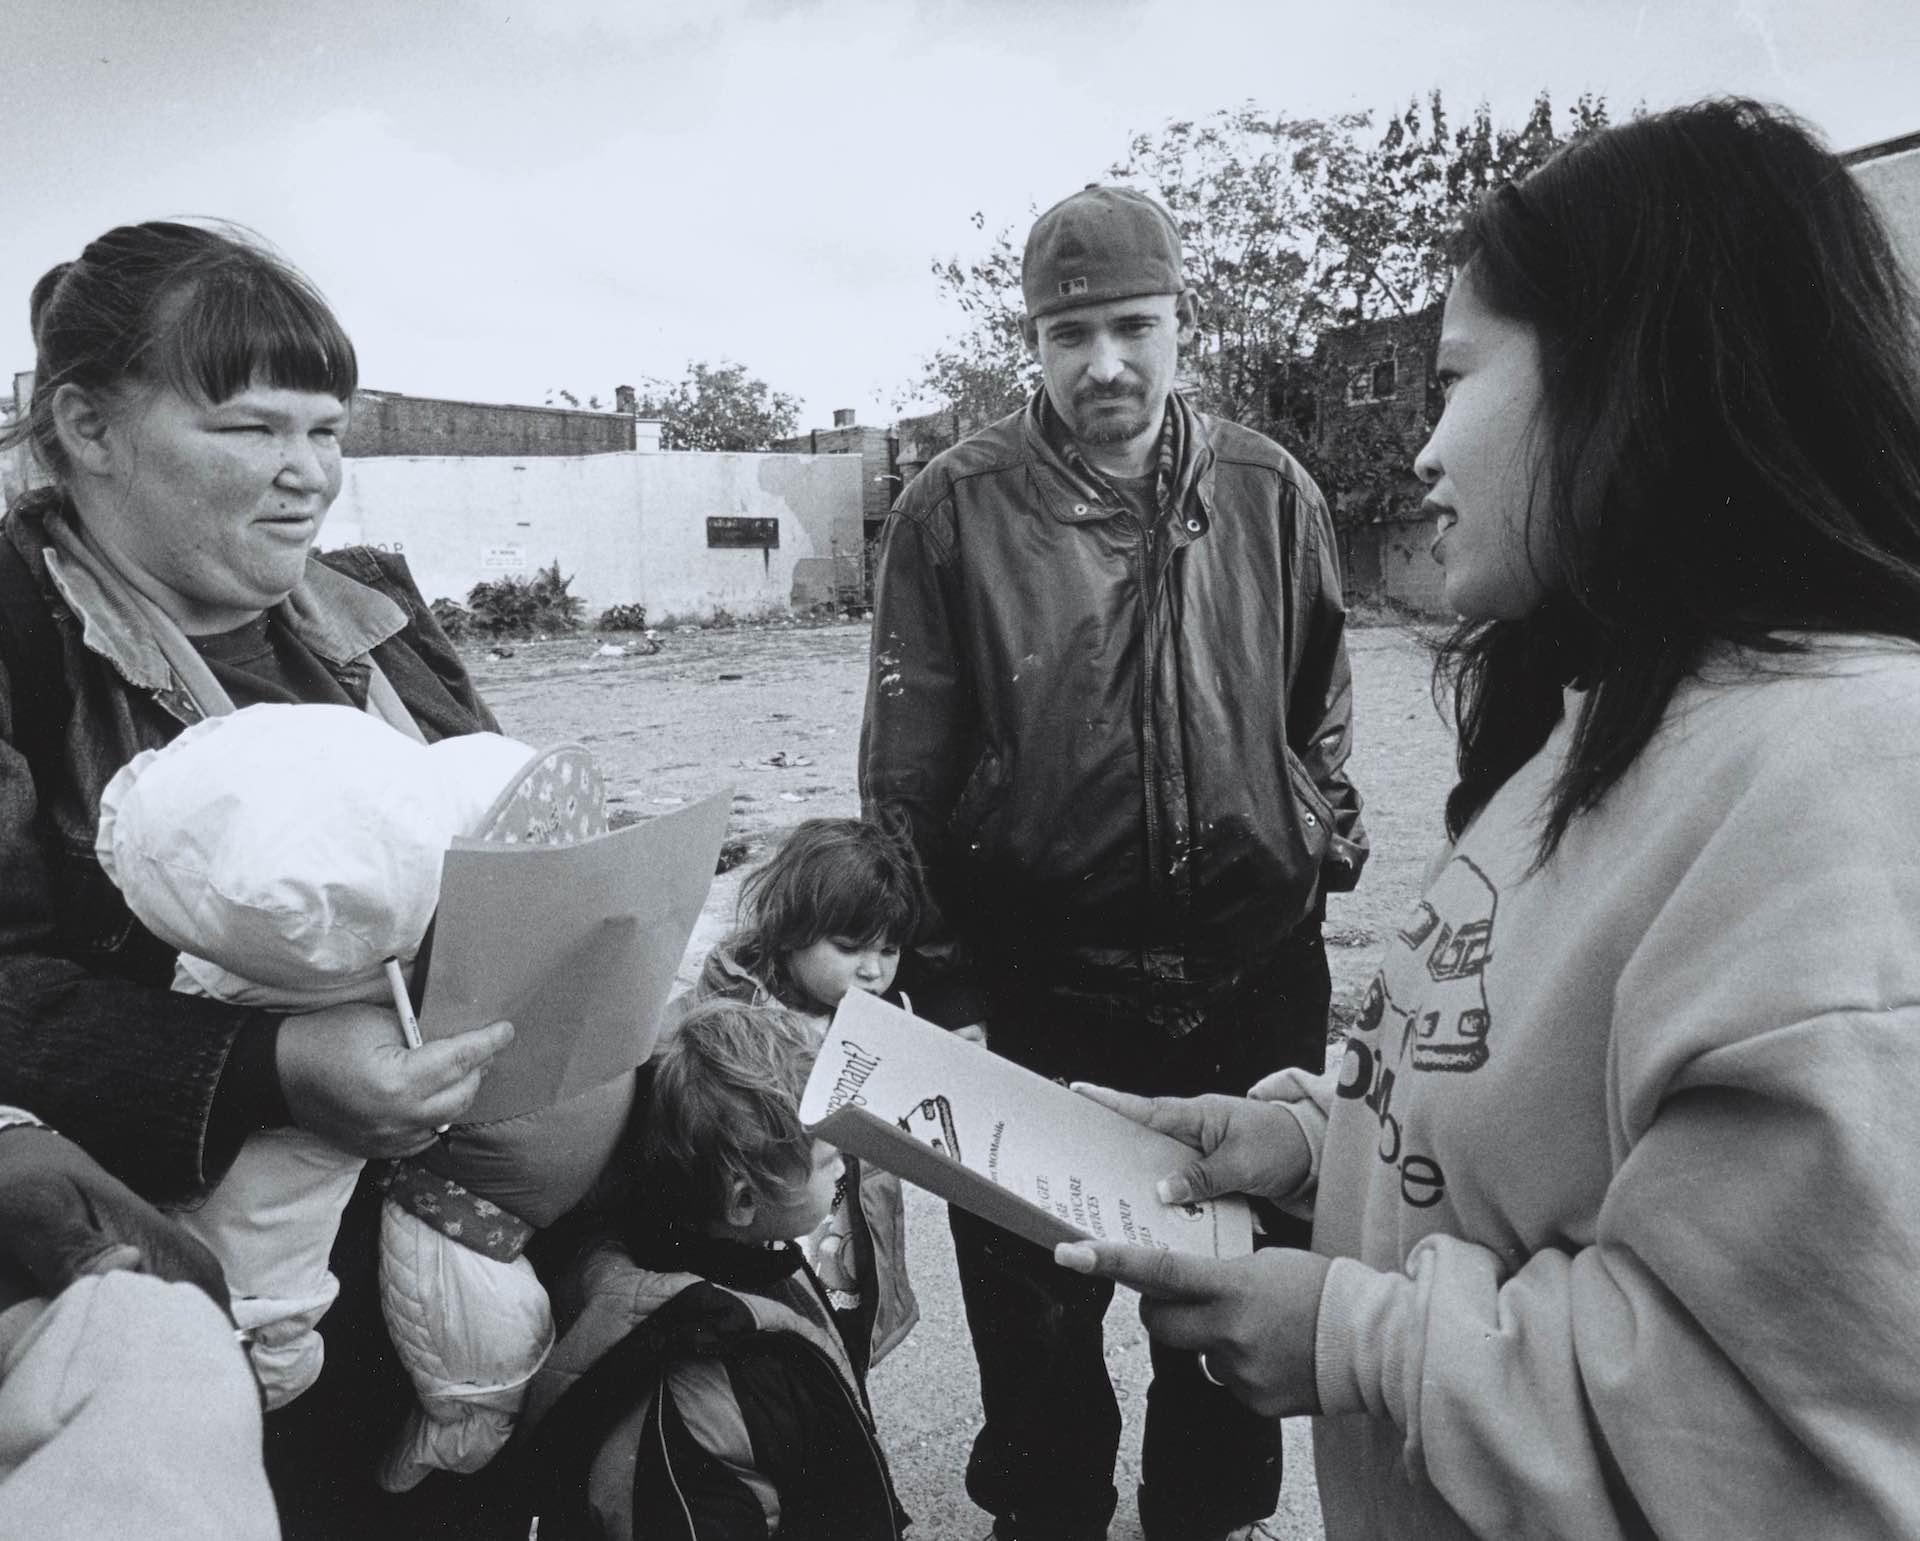 Maternity Care Coalition staff serving client in Philadelphia, 1980s. Photo by Jerry Millevoi; courtesy of MCC and the University of Pennsylvania Library Archives